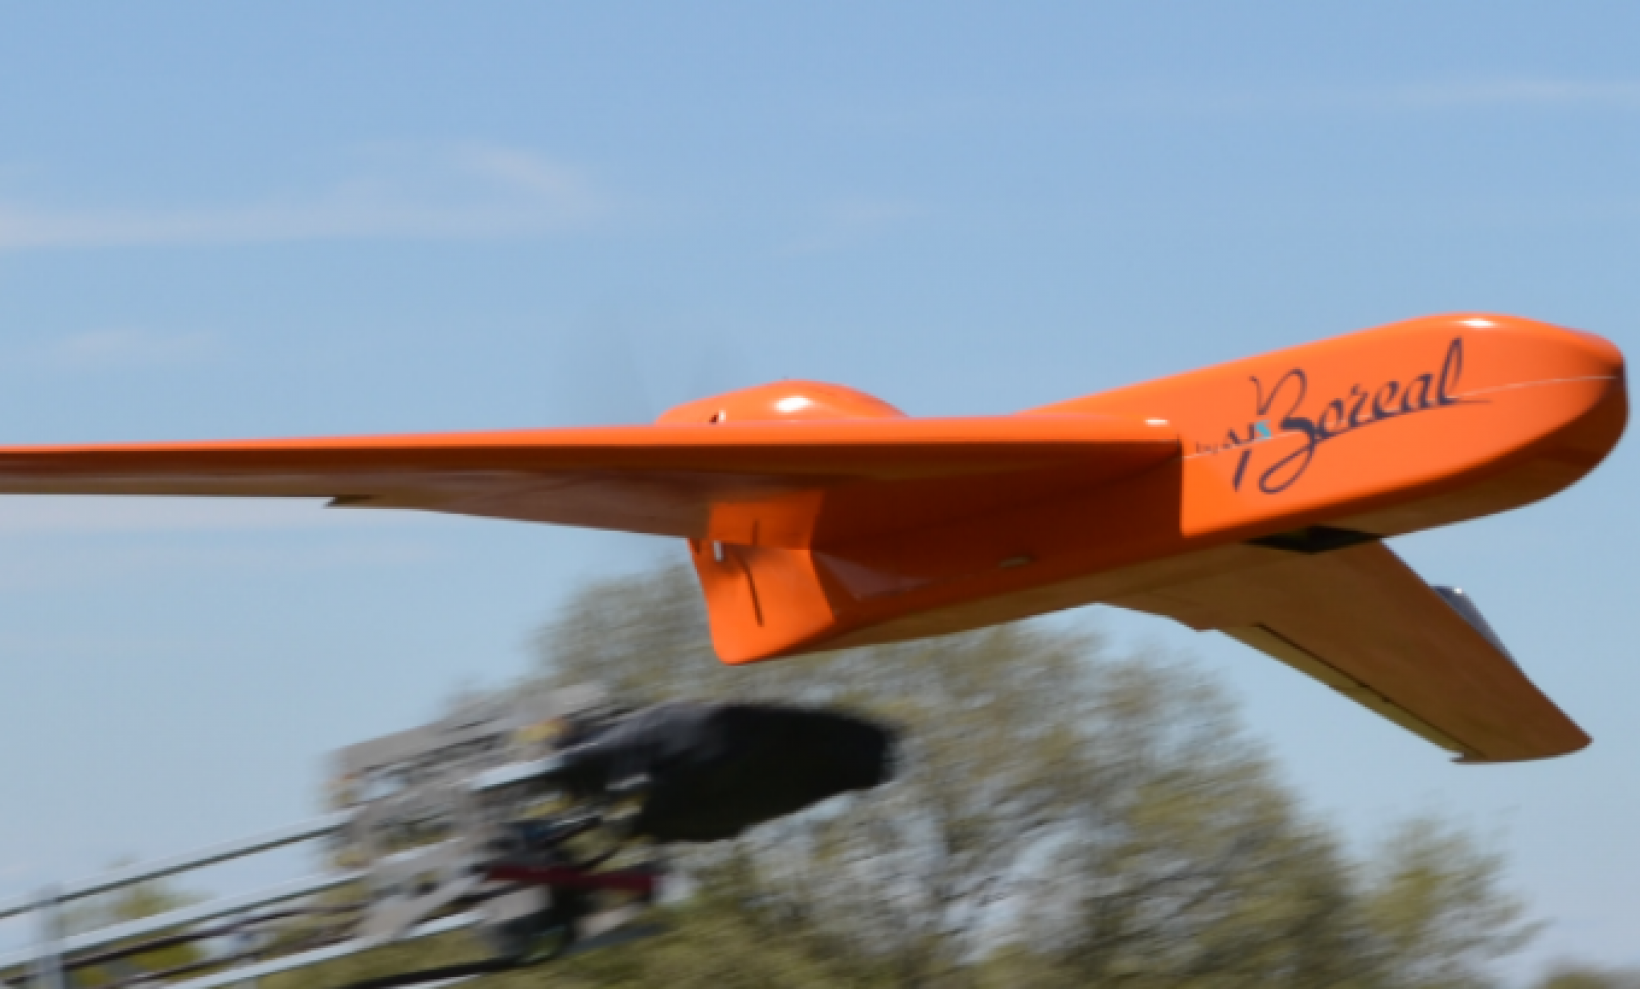 EGNSS improves positioning integrity and accuracy for the Boreal drone